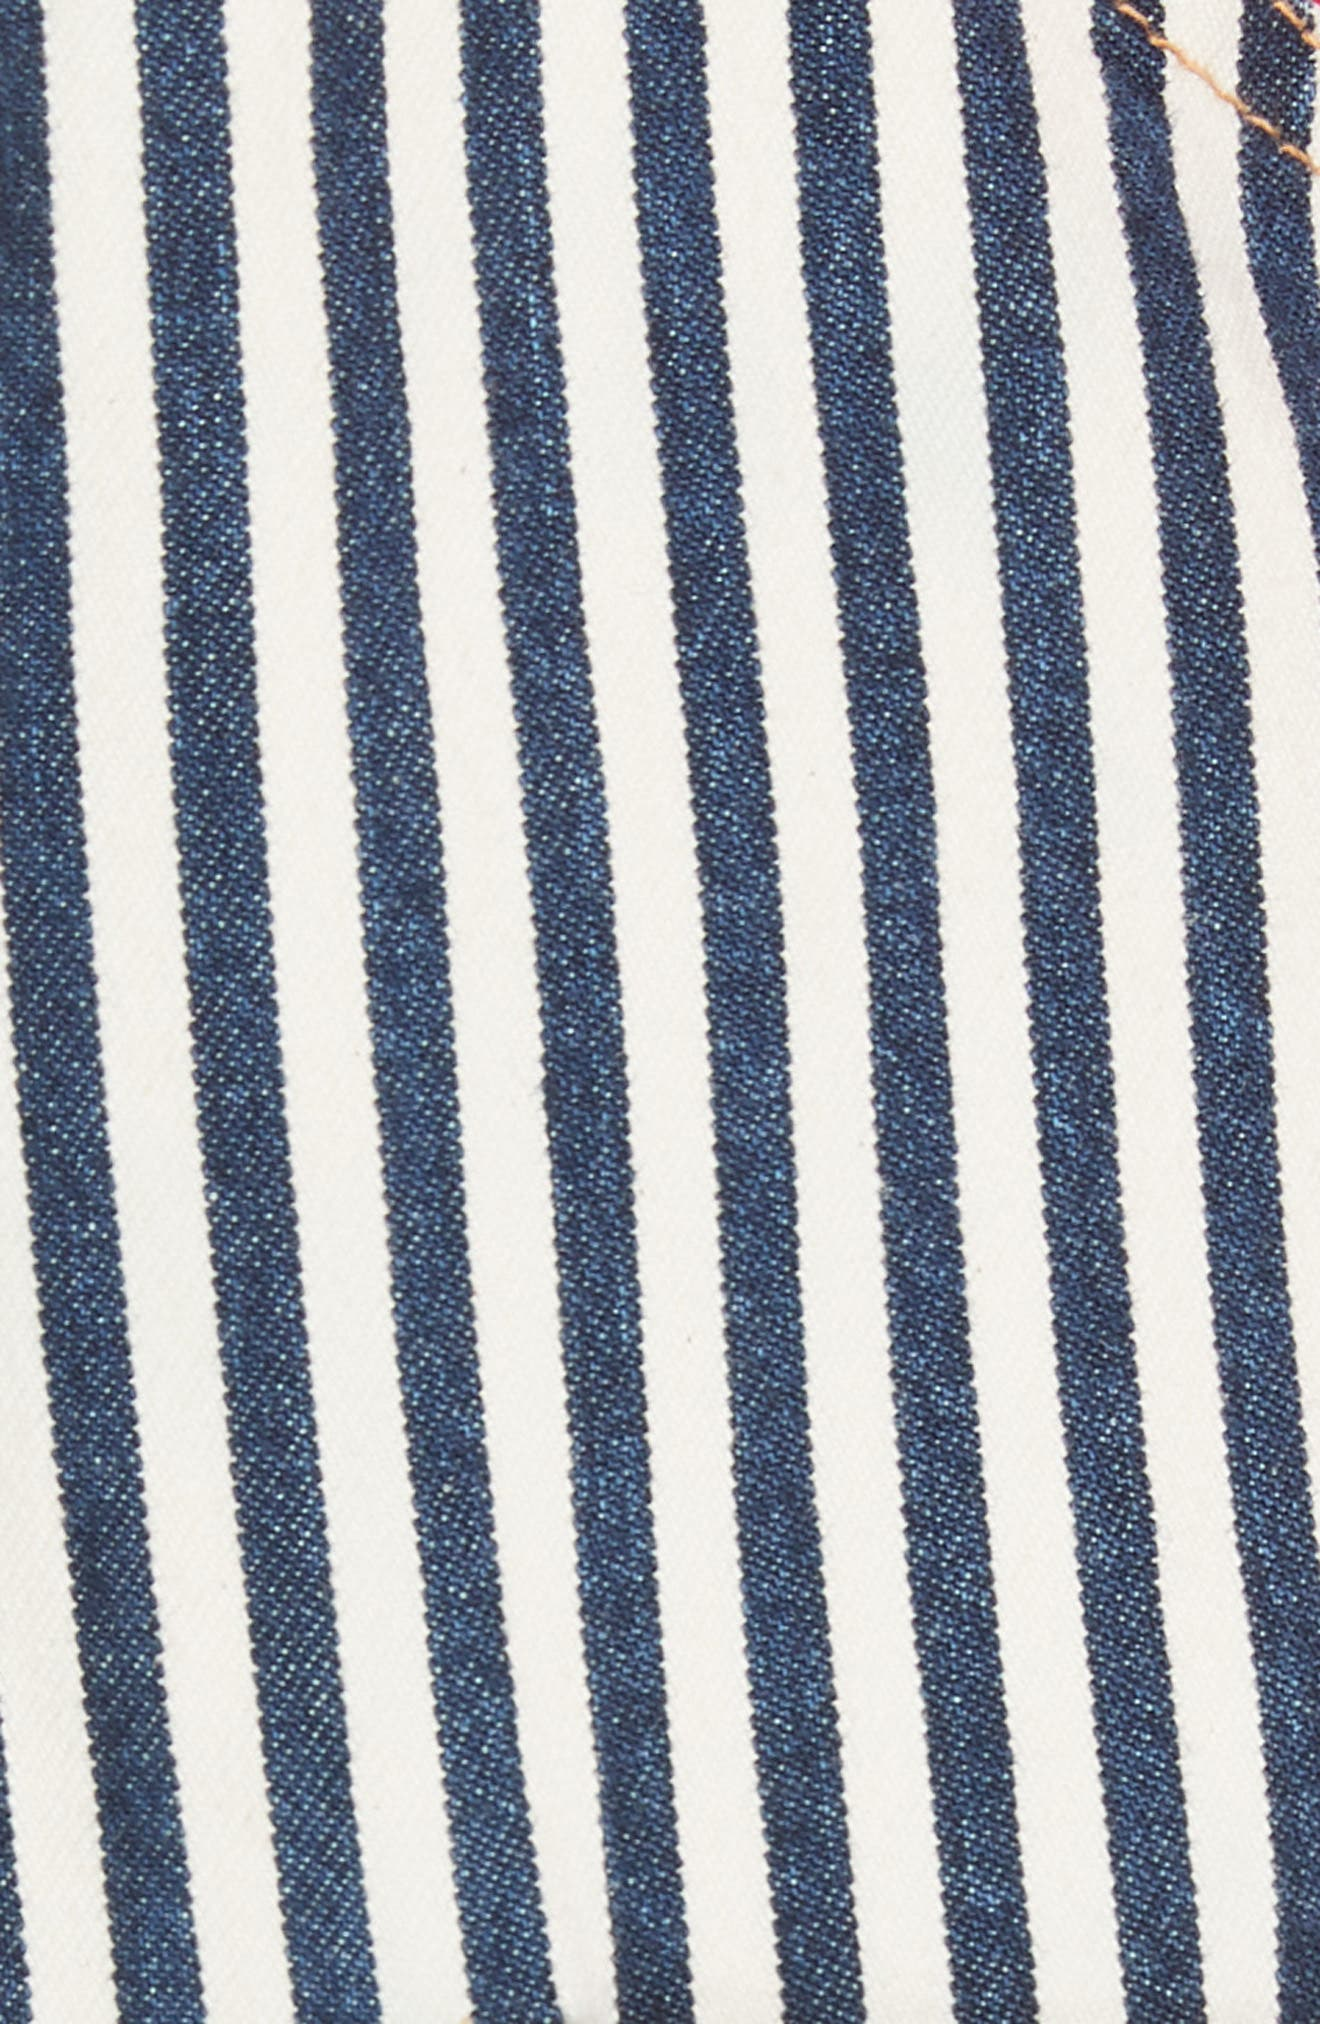 Patched Dungarees,                             Alternate thumbnail 5, color,                             Indigo Stripe